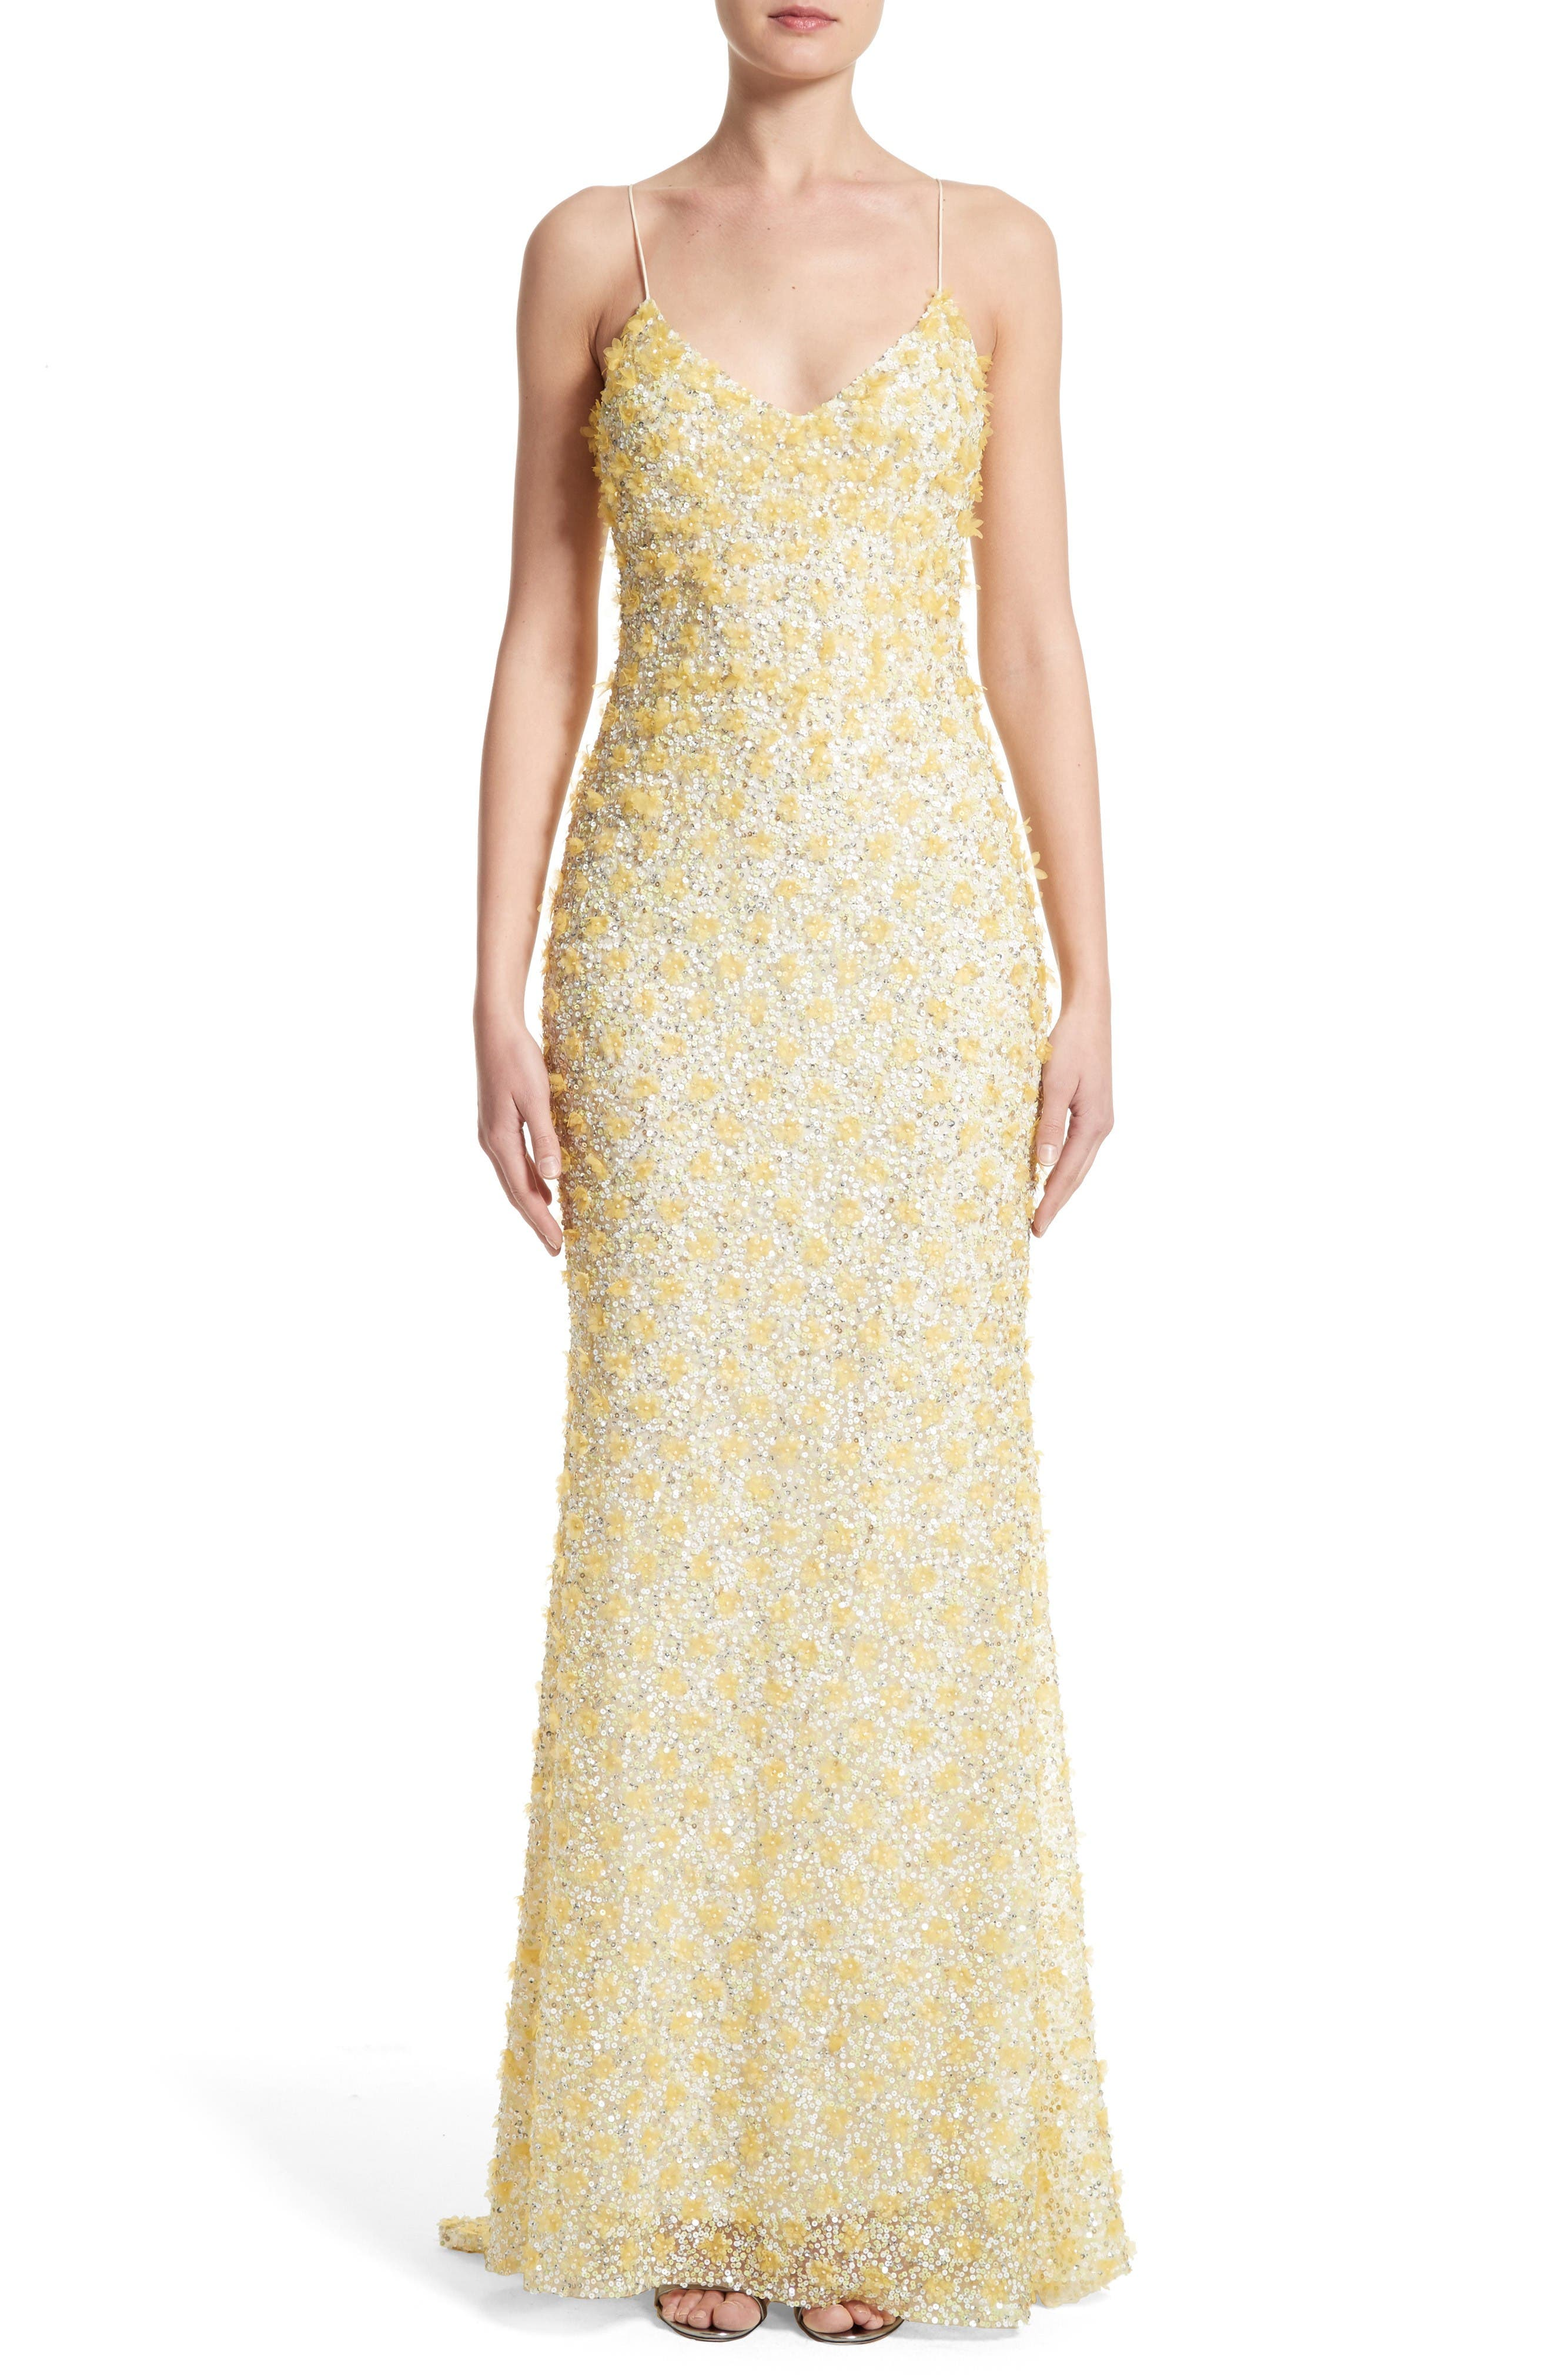 Badgley Mischka Couture Embellished Gown,                         Main,                         color, Yellow